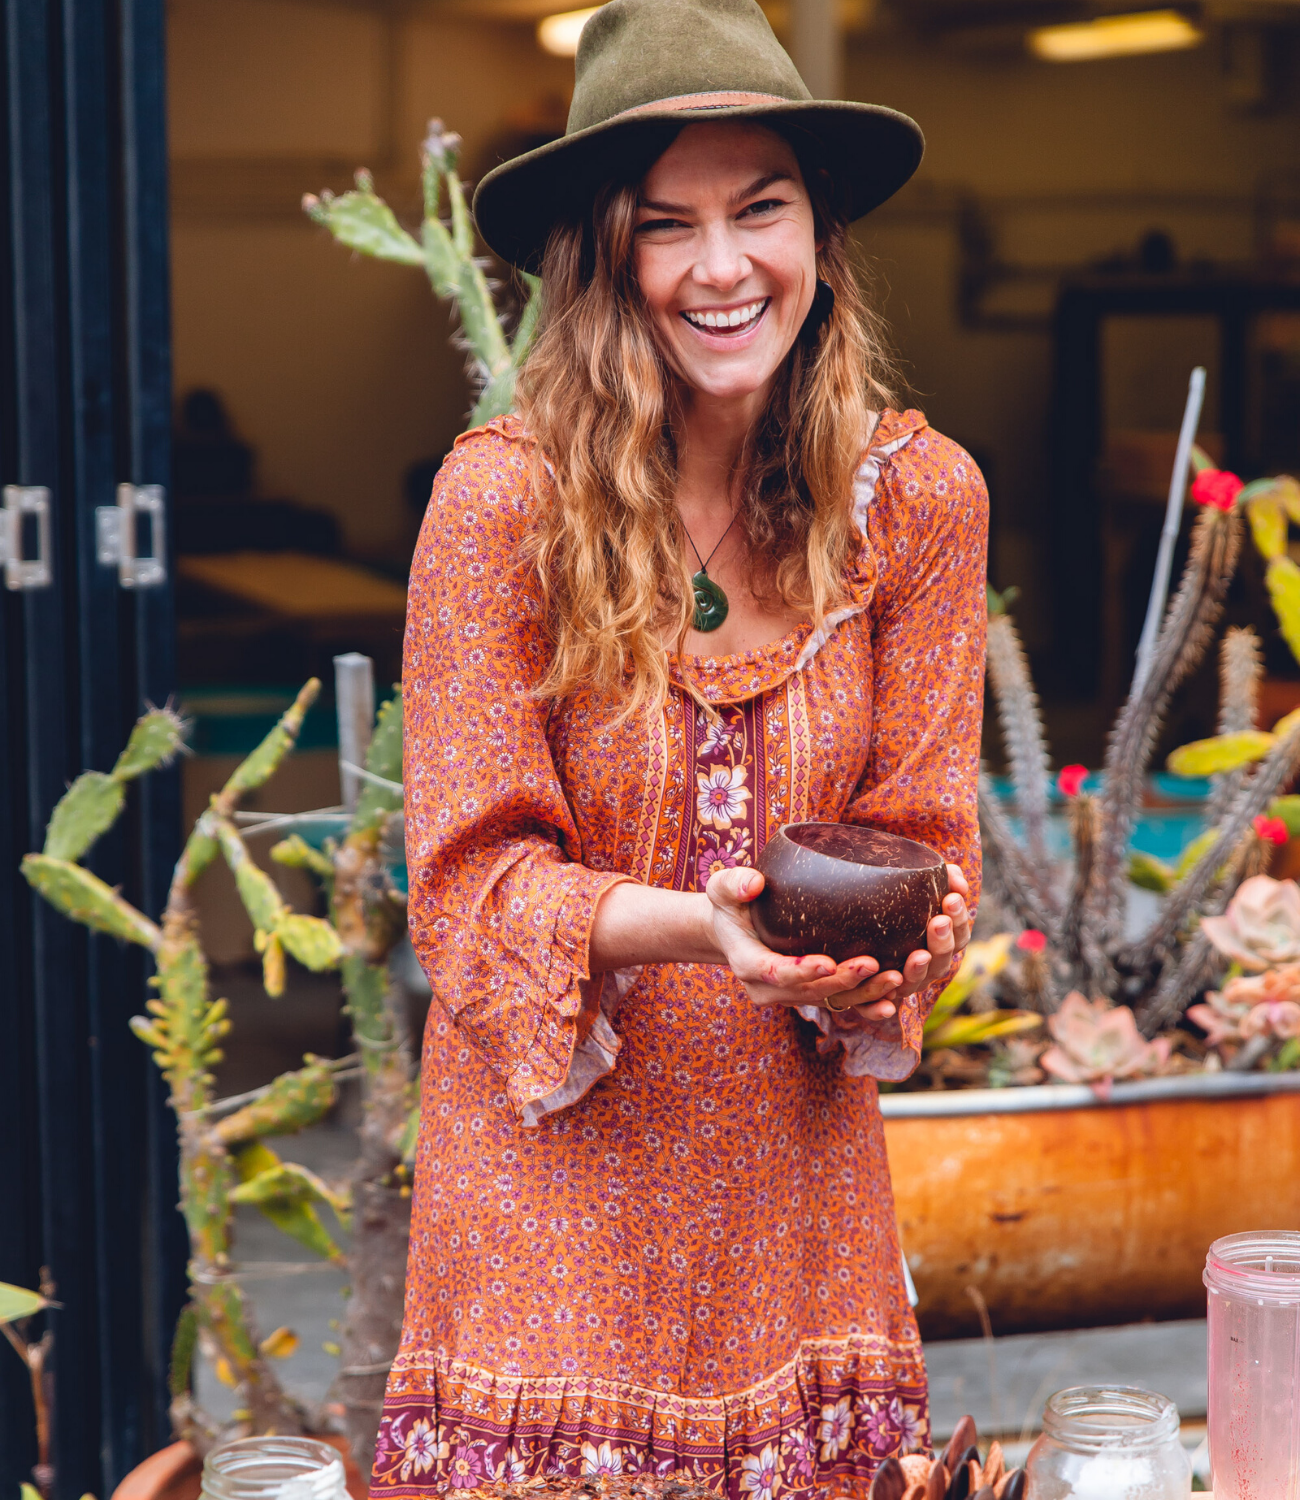 Meet Georgie of Mindful Foods in conversation on the blog at Arnhem sustainable fashion